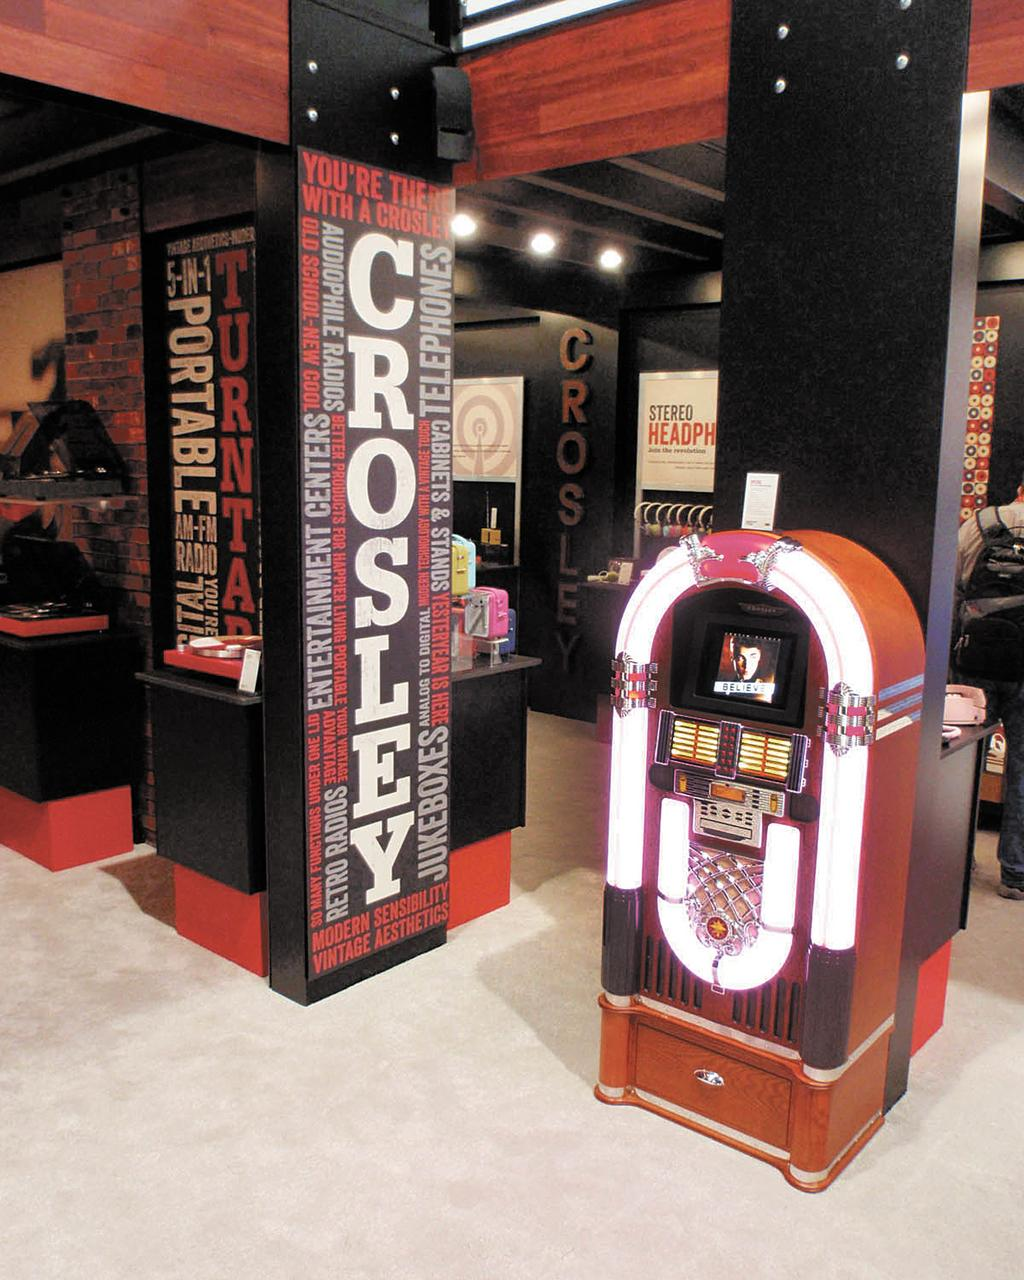 Crosley Radio Ces Is A Big Marketing Opportunity For Crosley Radio Louisville